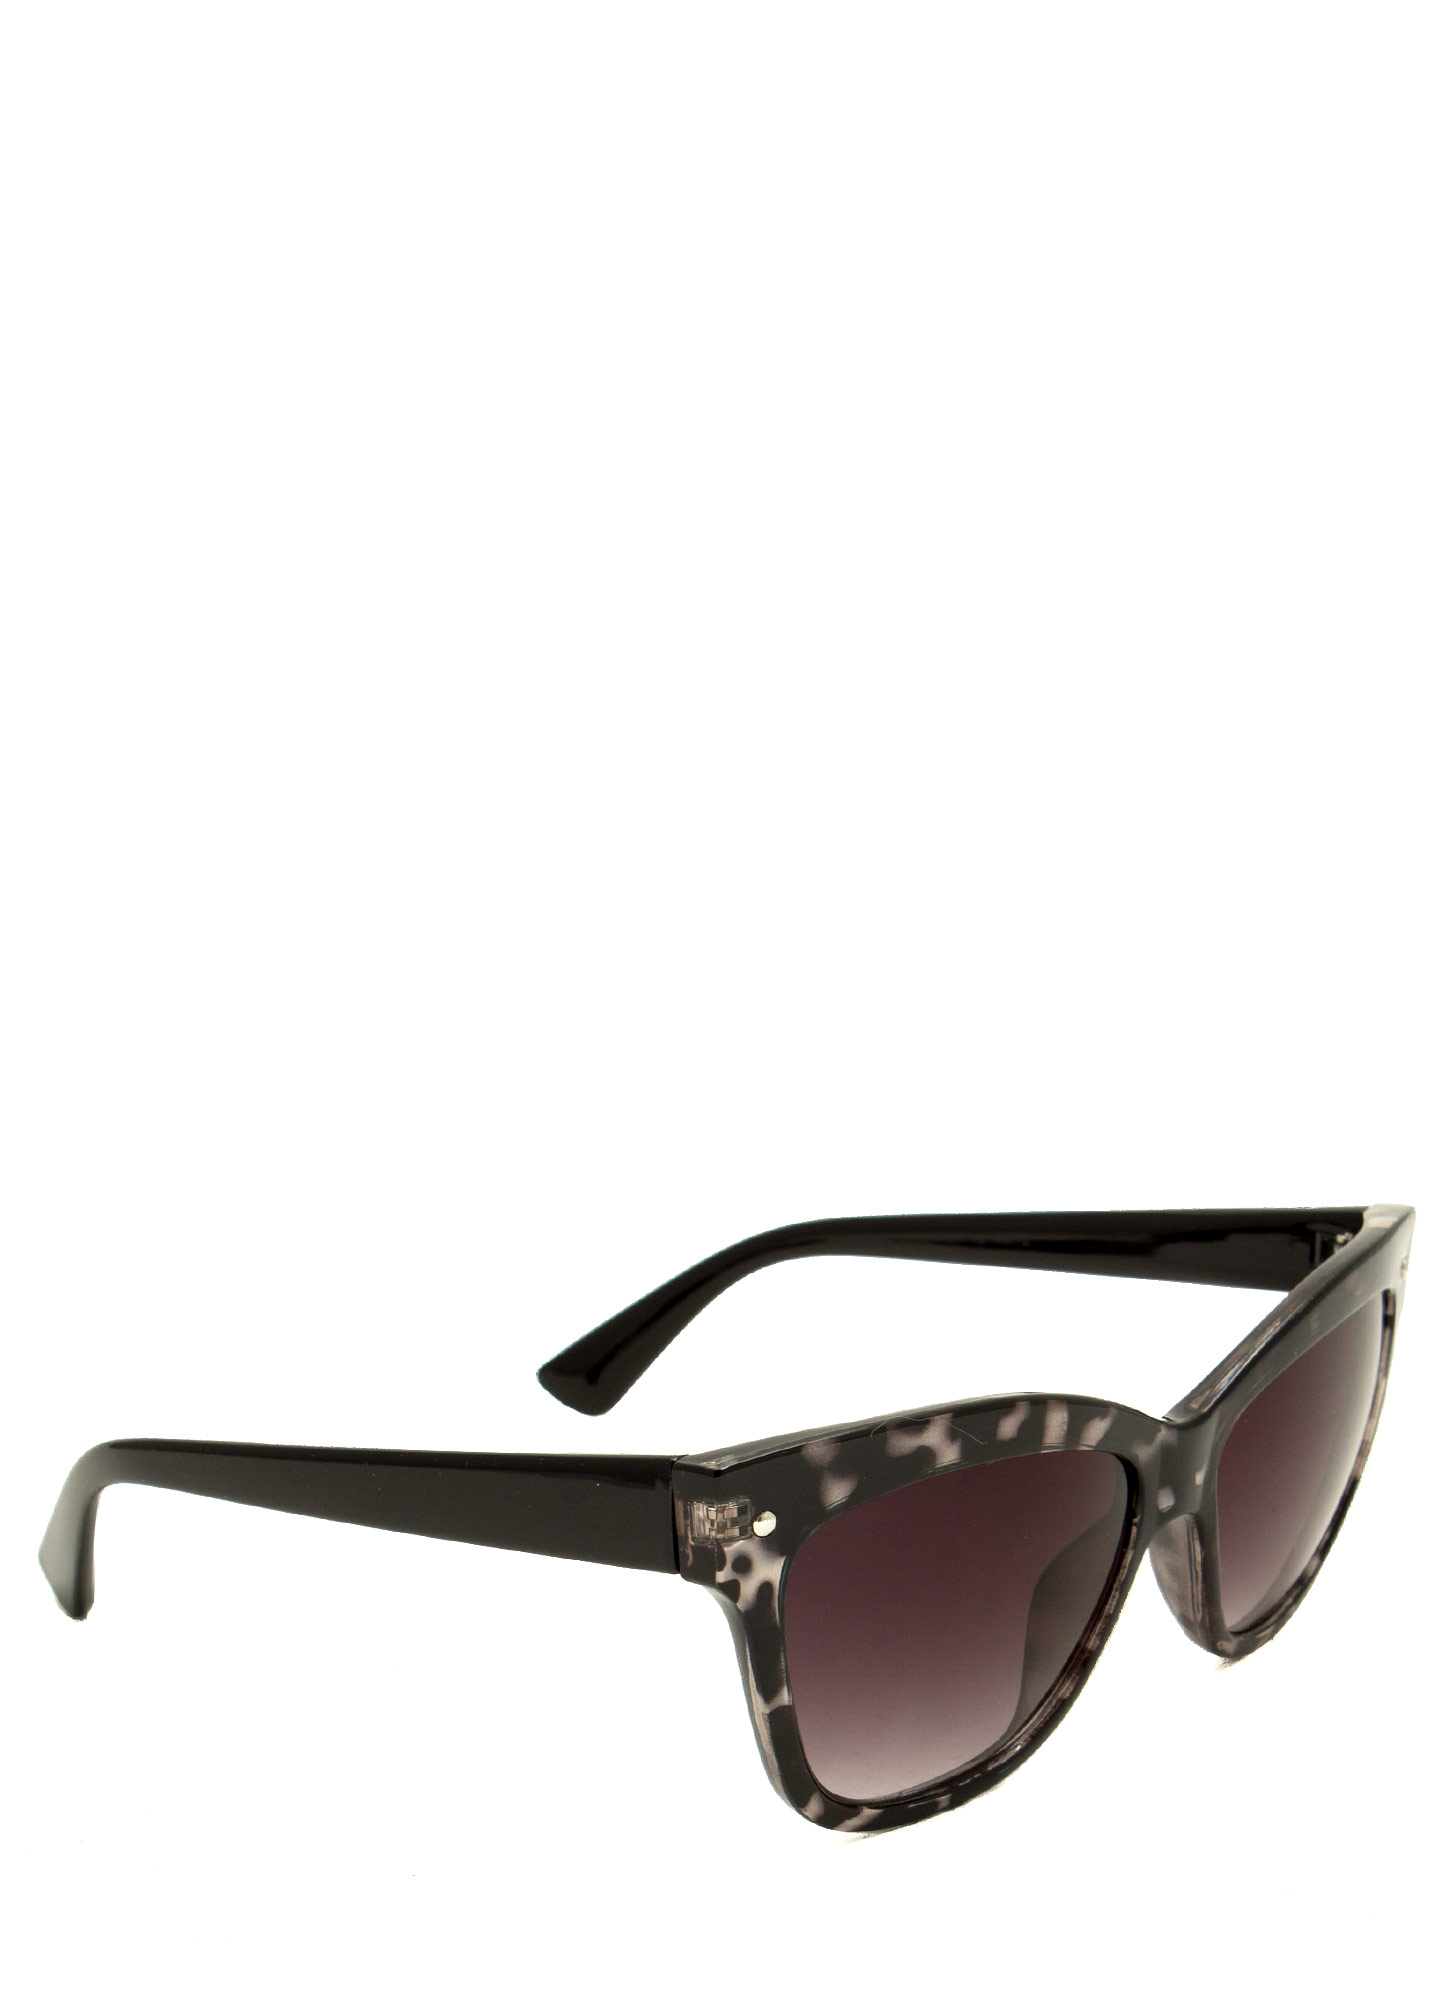 Modern Cat Eye Sunglasses LTTORTOISE